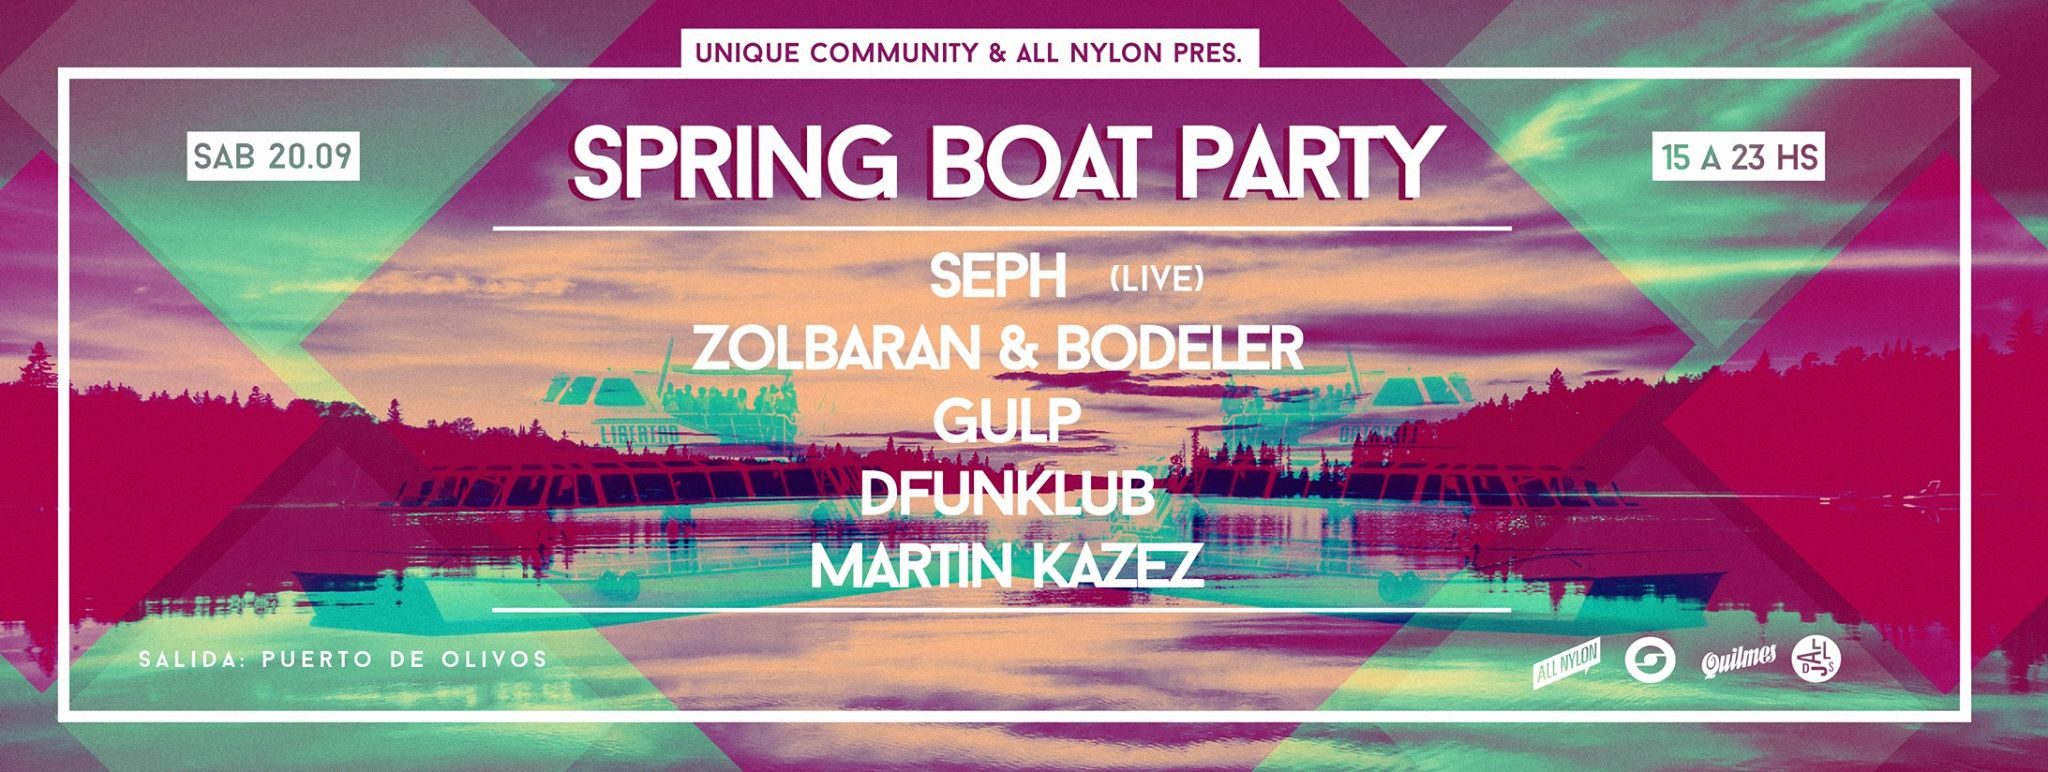 Spring boat party